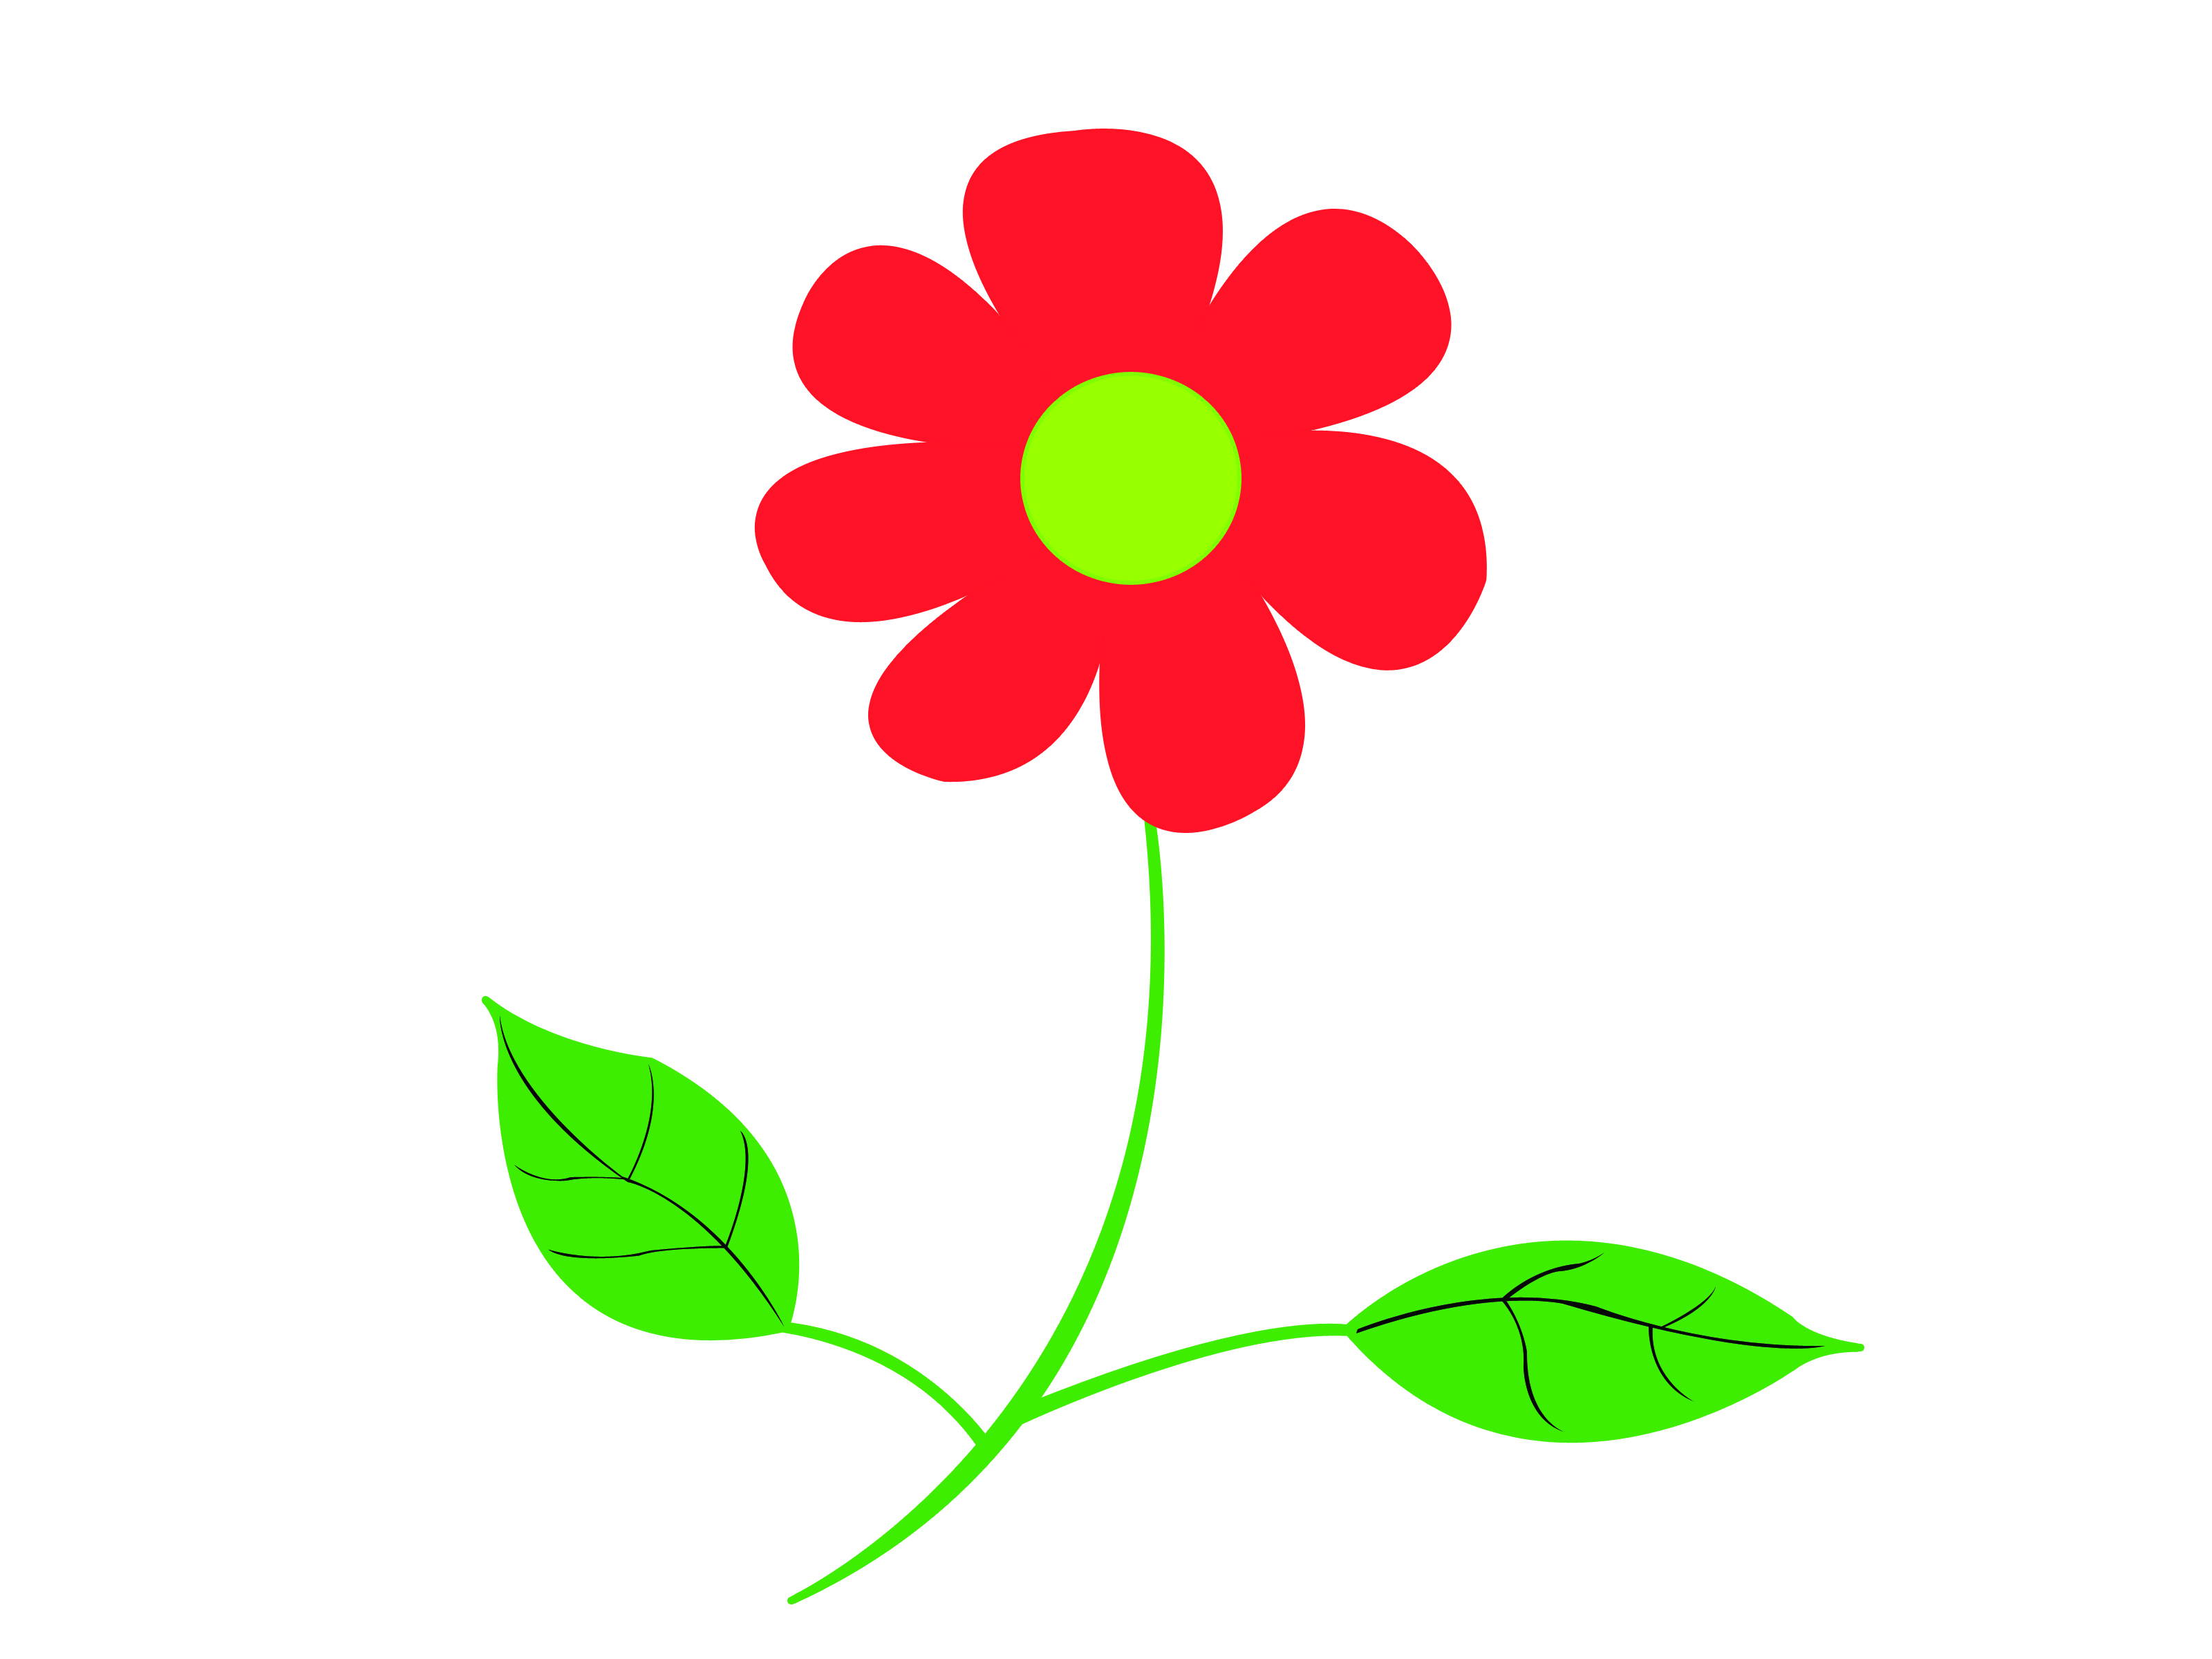 3200x2400 Flower Drawings Color Simple Cartoon Images Easy Pot Of Food